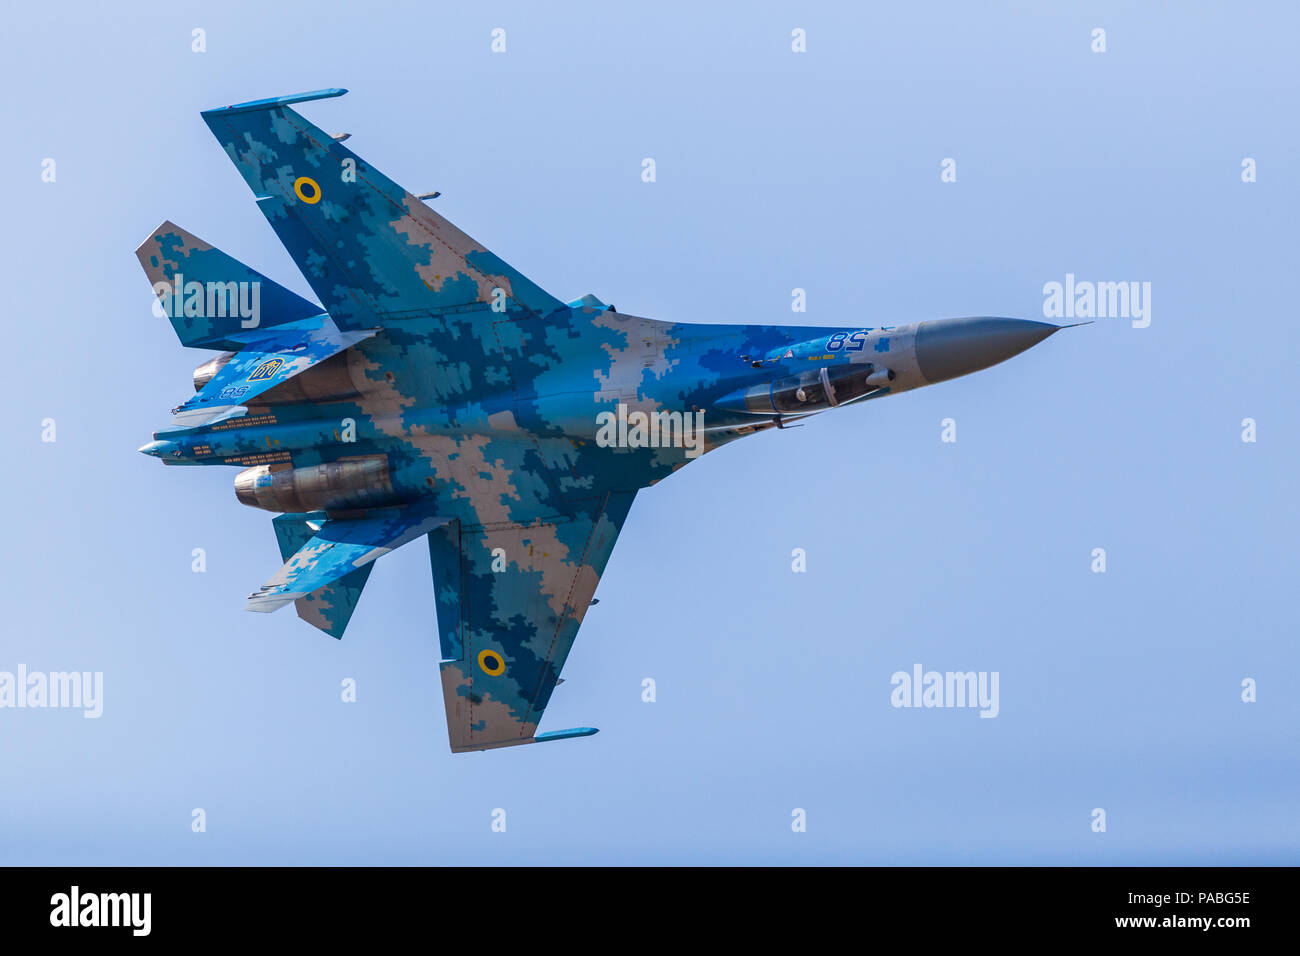 Ukrainian Air Force Su-27 Flanker pictured at the 2018 Royal International Air Tattoo at RAF Fairford in Gloucestershire. - Stock Image